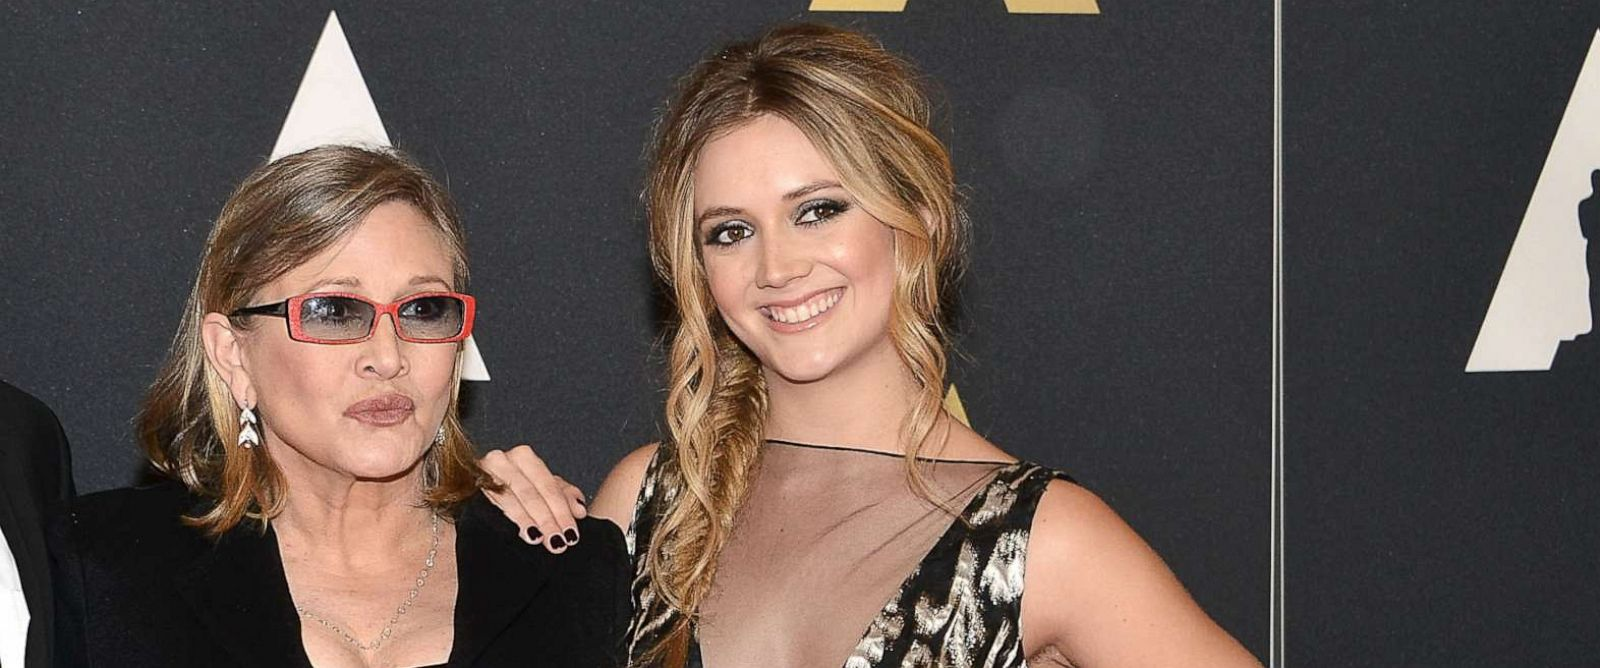 PHOTO: Carrie Fisher and her daughter Billie Lourd attend the Academy of Motion Picture Arts and Sciences' 7th Annual Governors Awards on Nov. 14, 2015 in Hollywood, Calif.